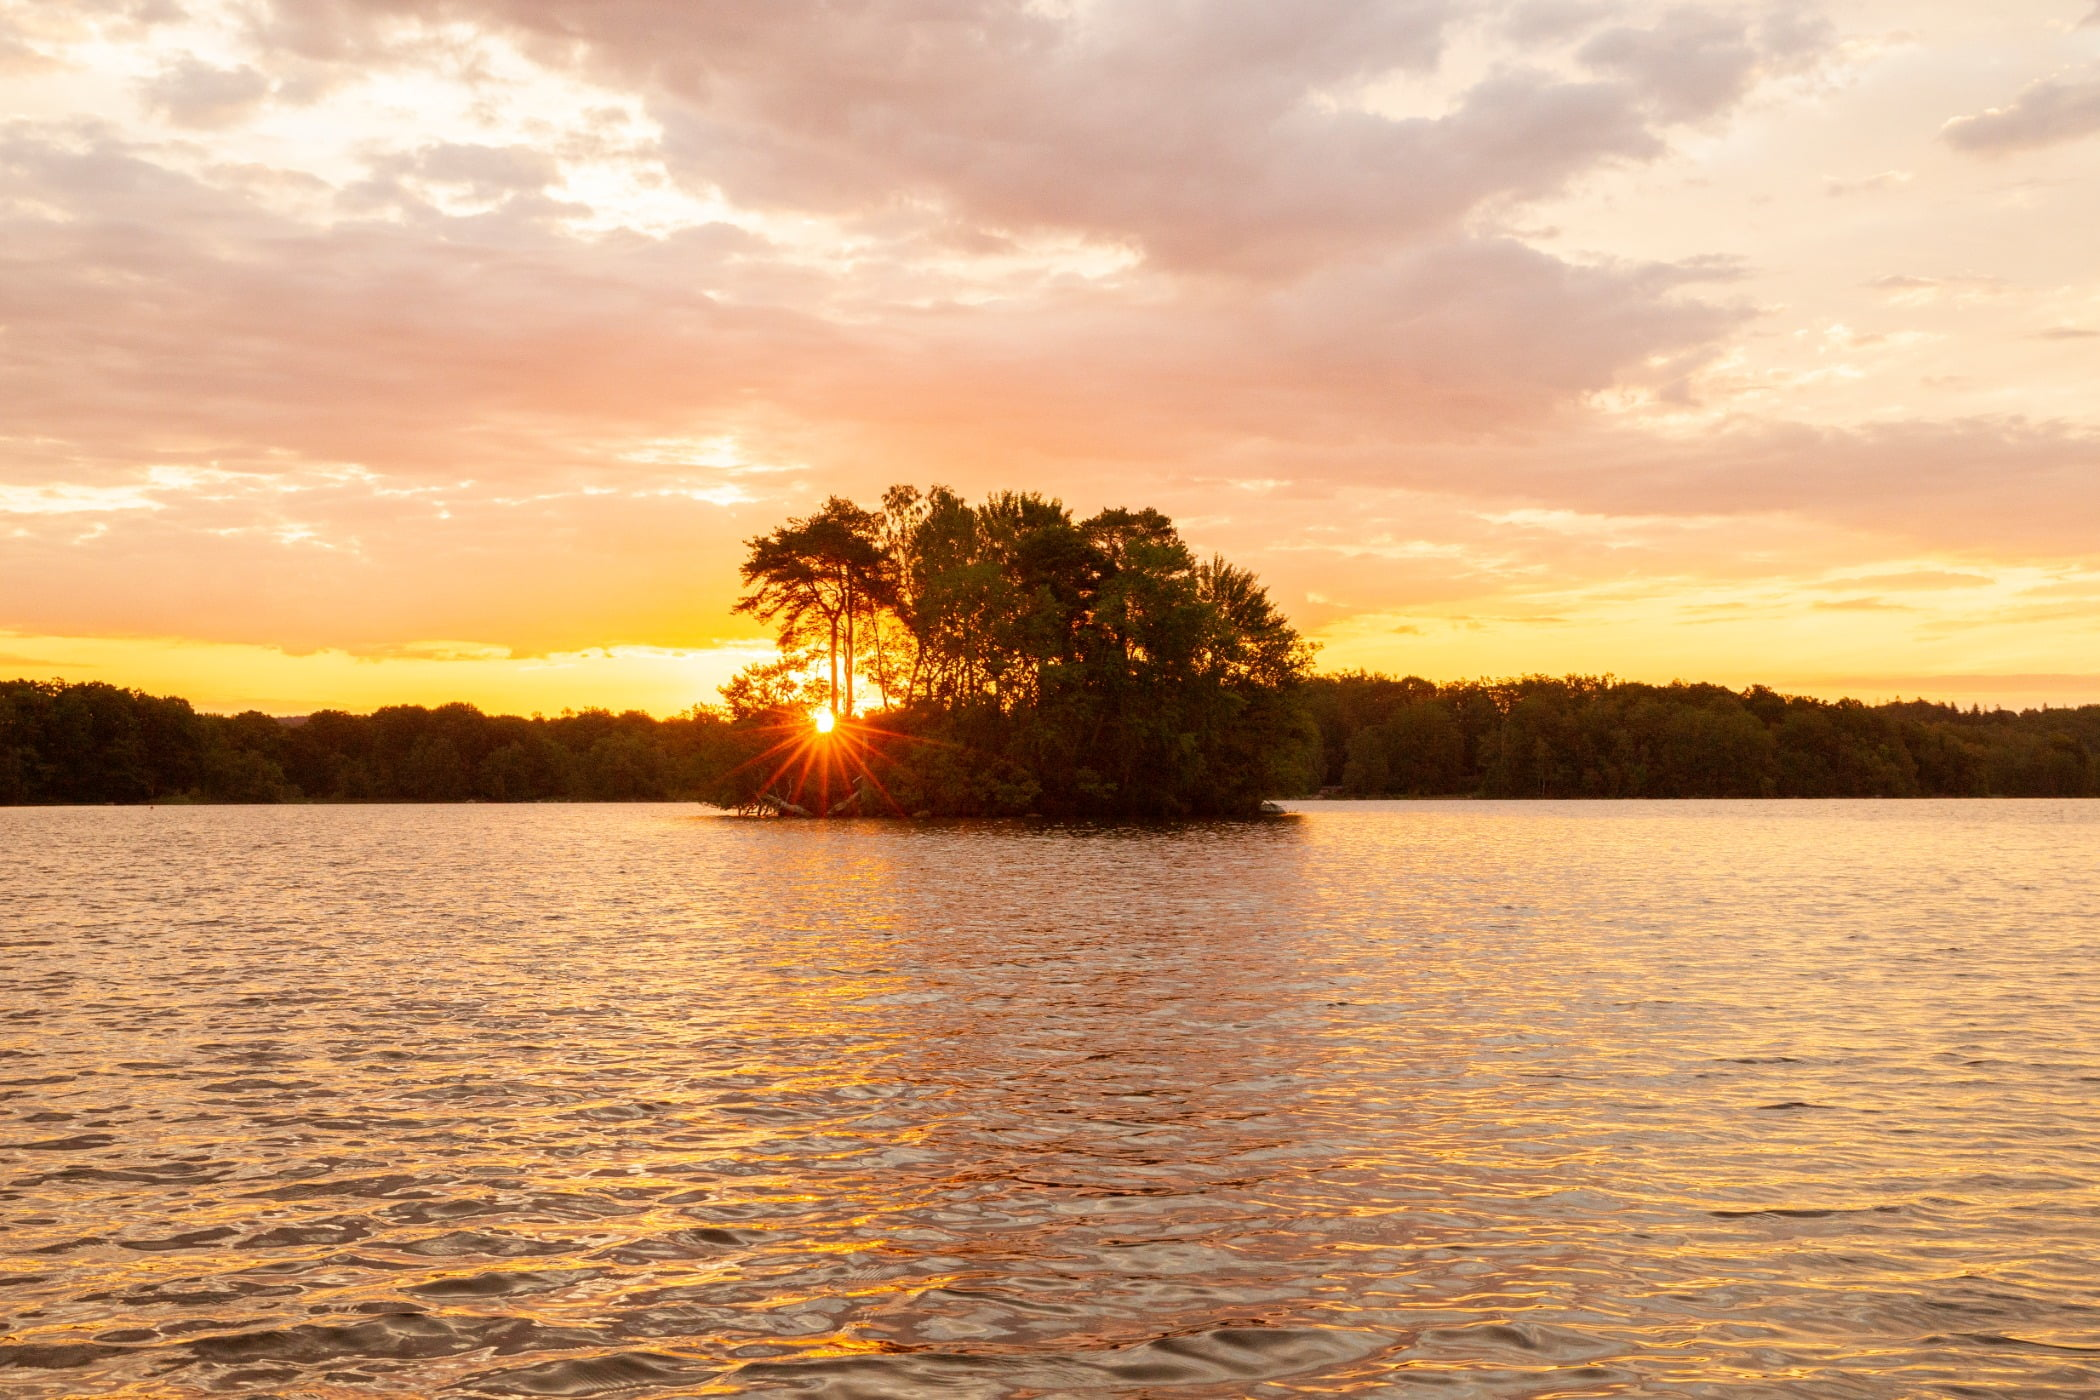 Red sky at morning, Water resources, Natural landscape, Cloud, Afterglow, Lake, Tree, Orange